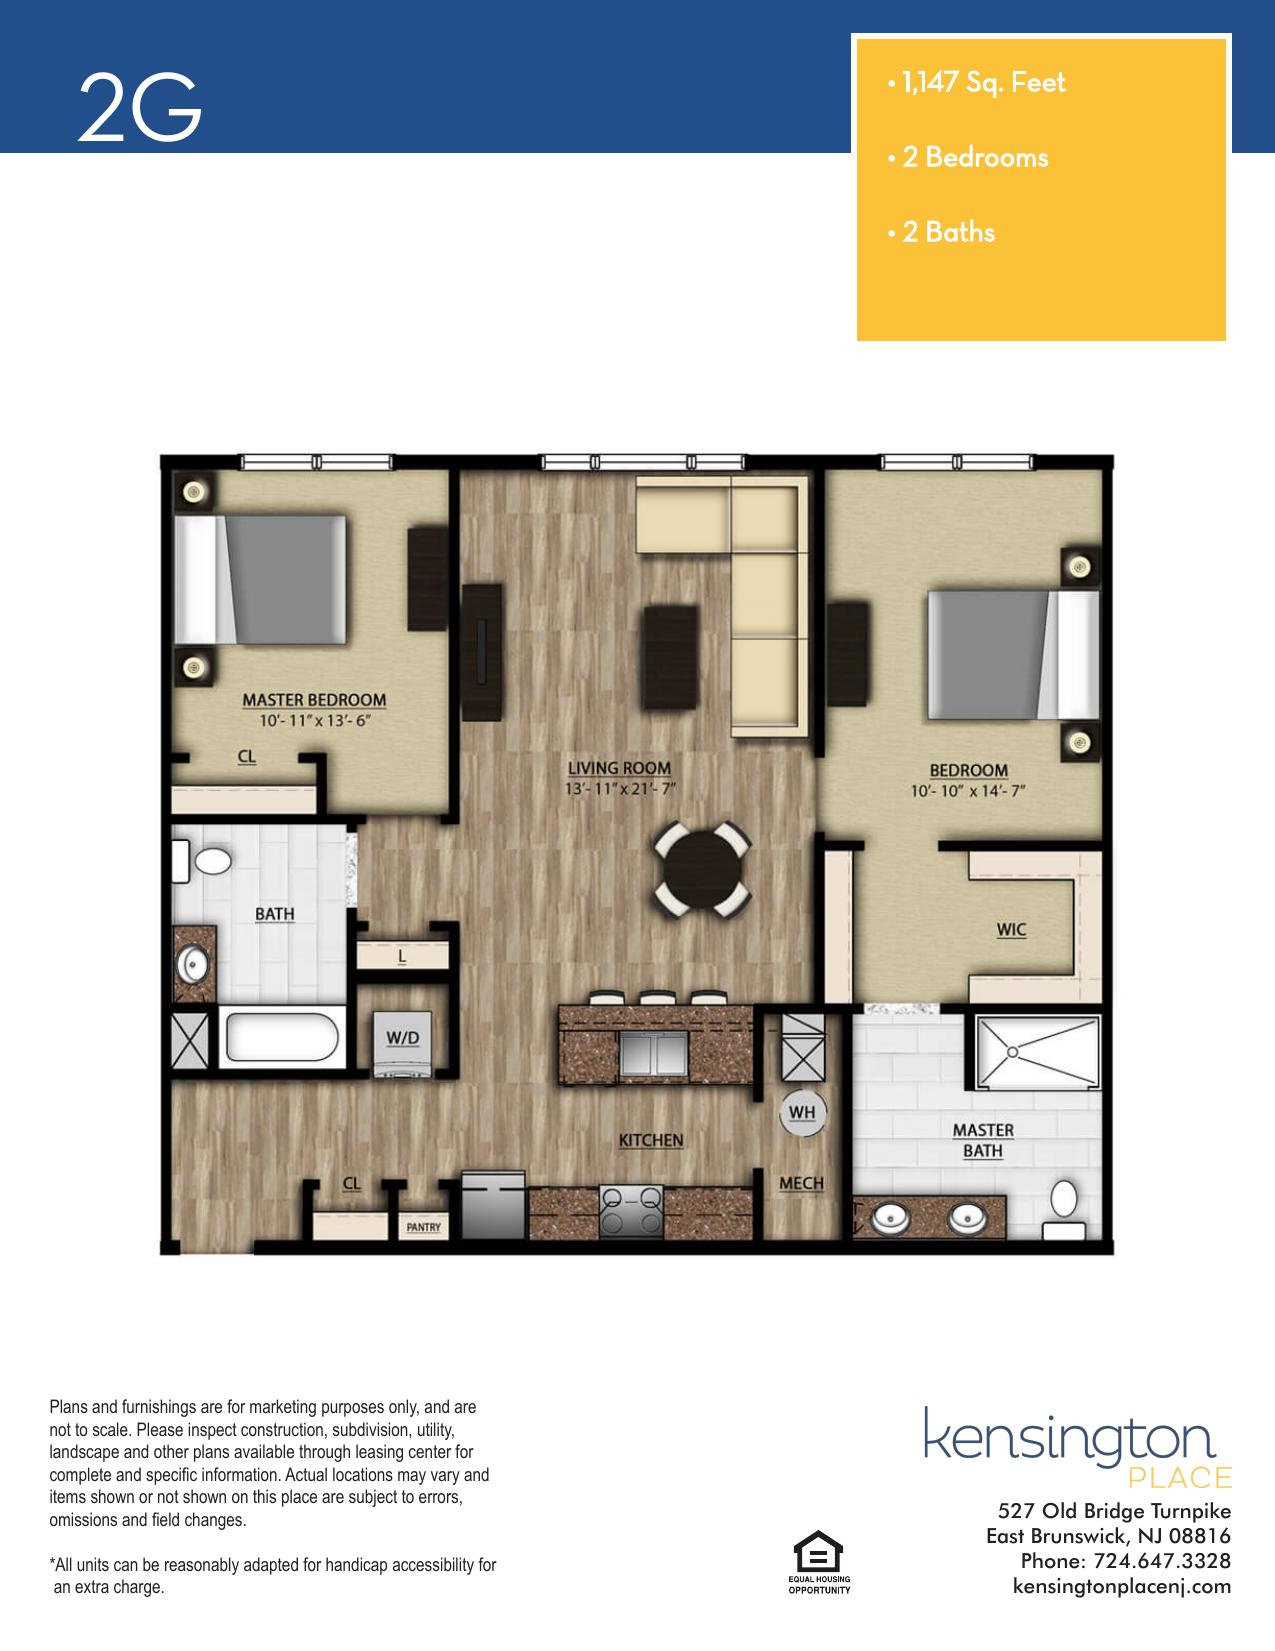 Kensington Place Apartment Floor Plan 2G